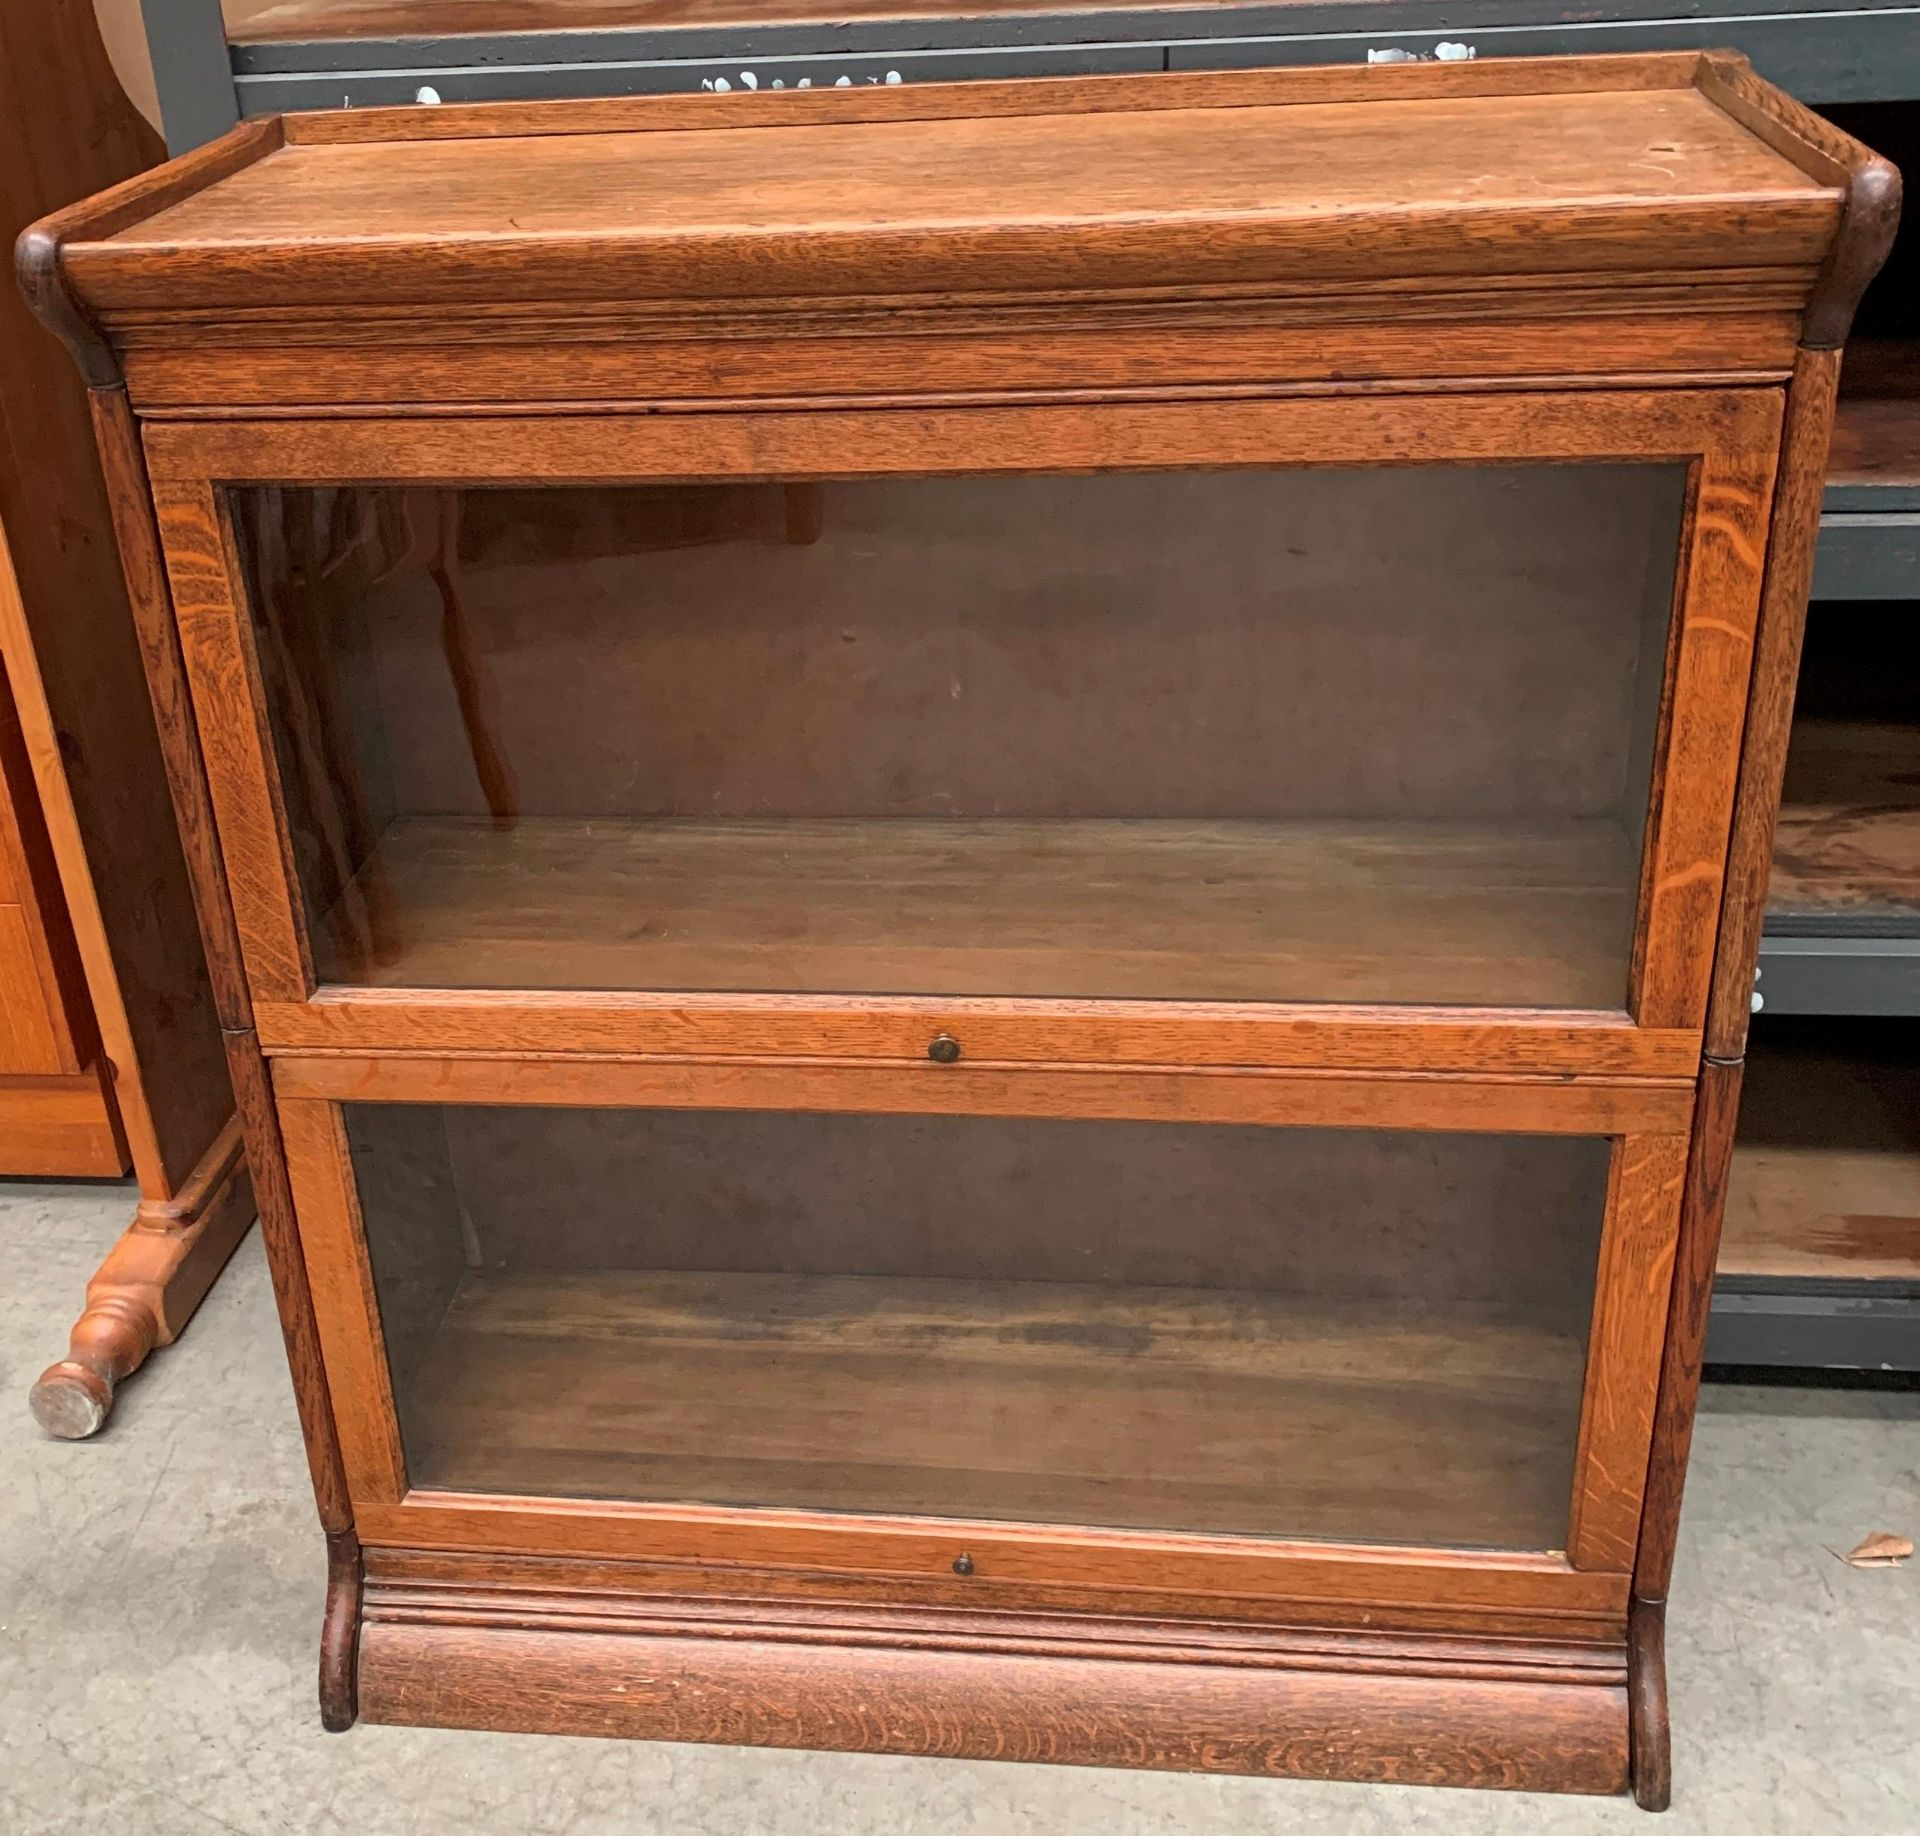 Lot 28 - An oak two height bookcase (Globe Wernicke style) with two glazed lift up doors 87 x 99cm high